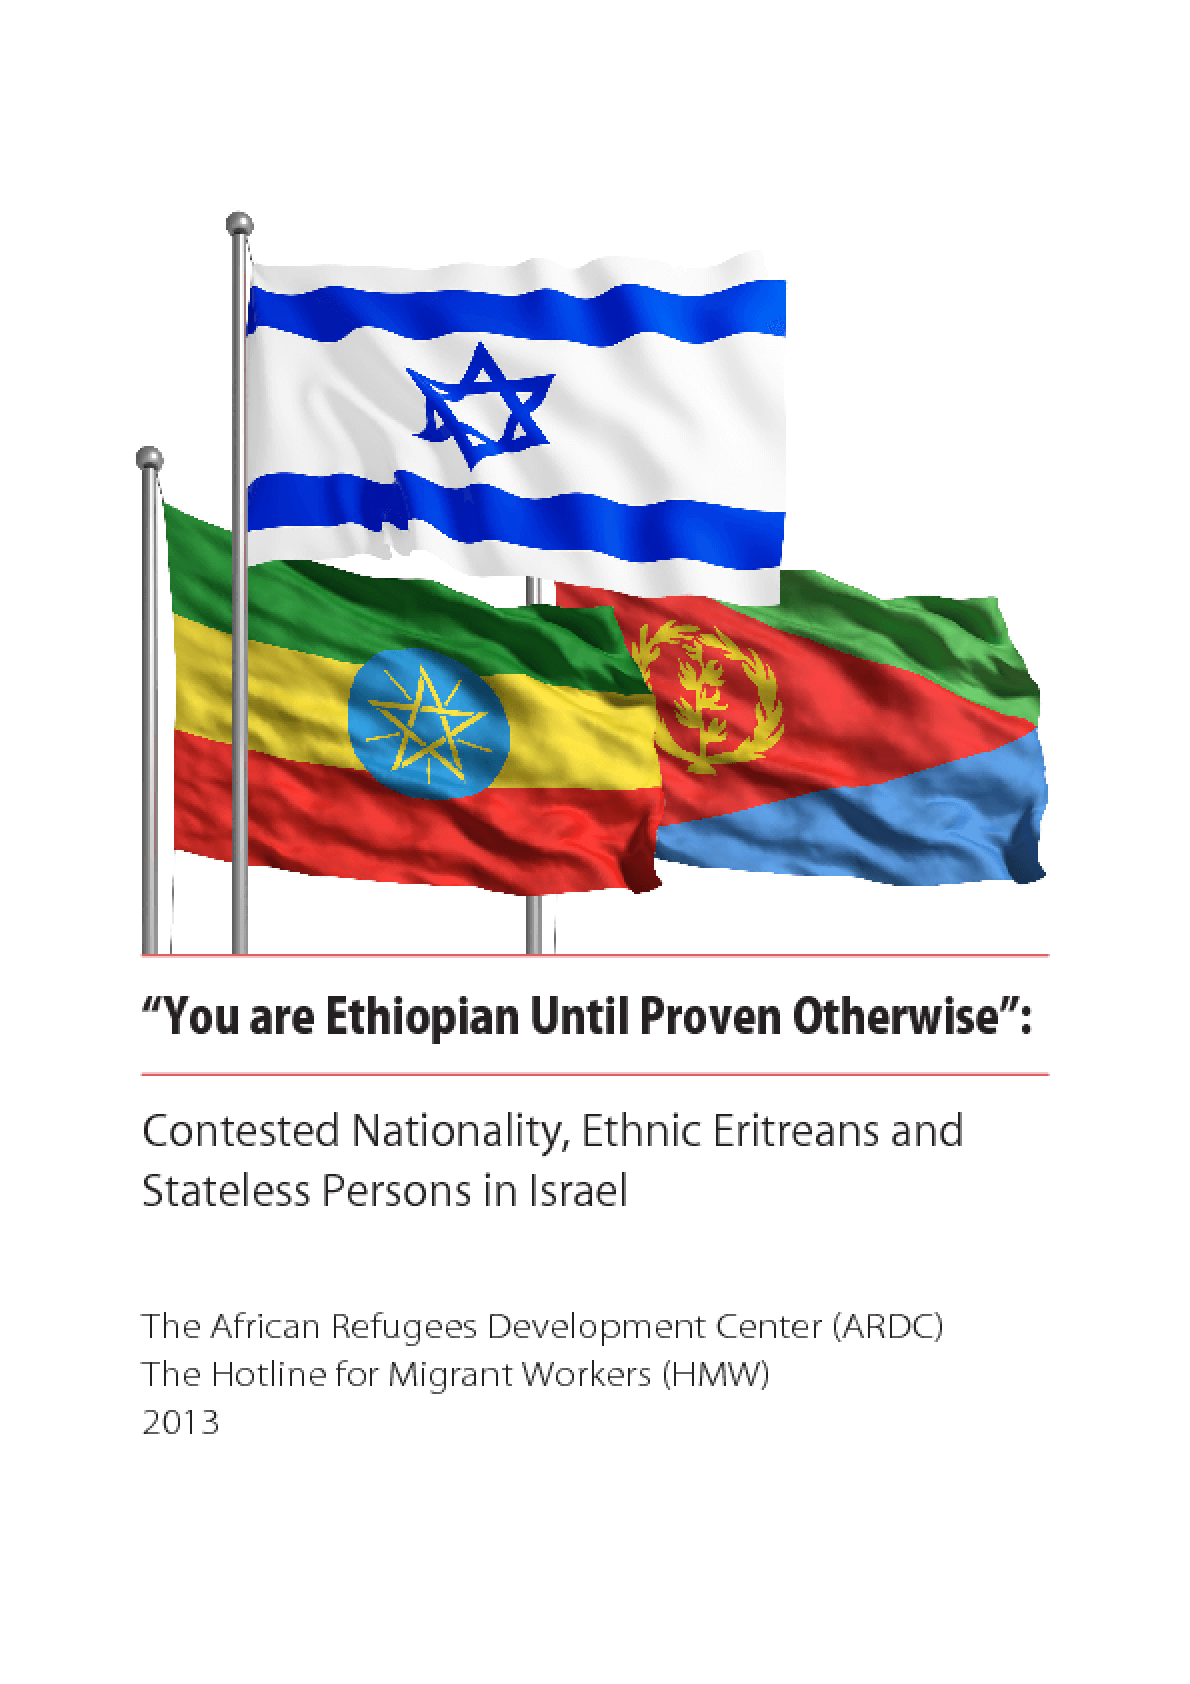 Your are Ethiopian Until Proven Otherwise: Contested Nationality, Ethnic Eritreans and Stateless Persons in Israel